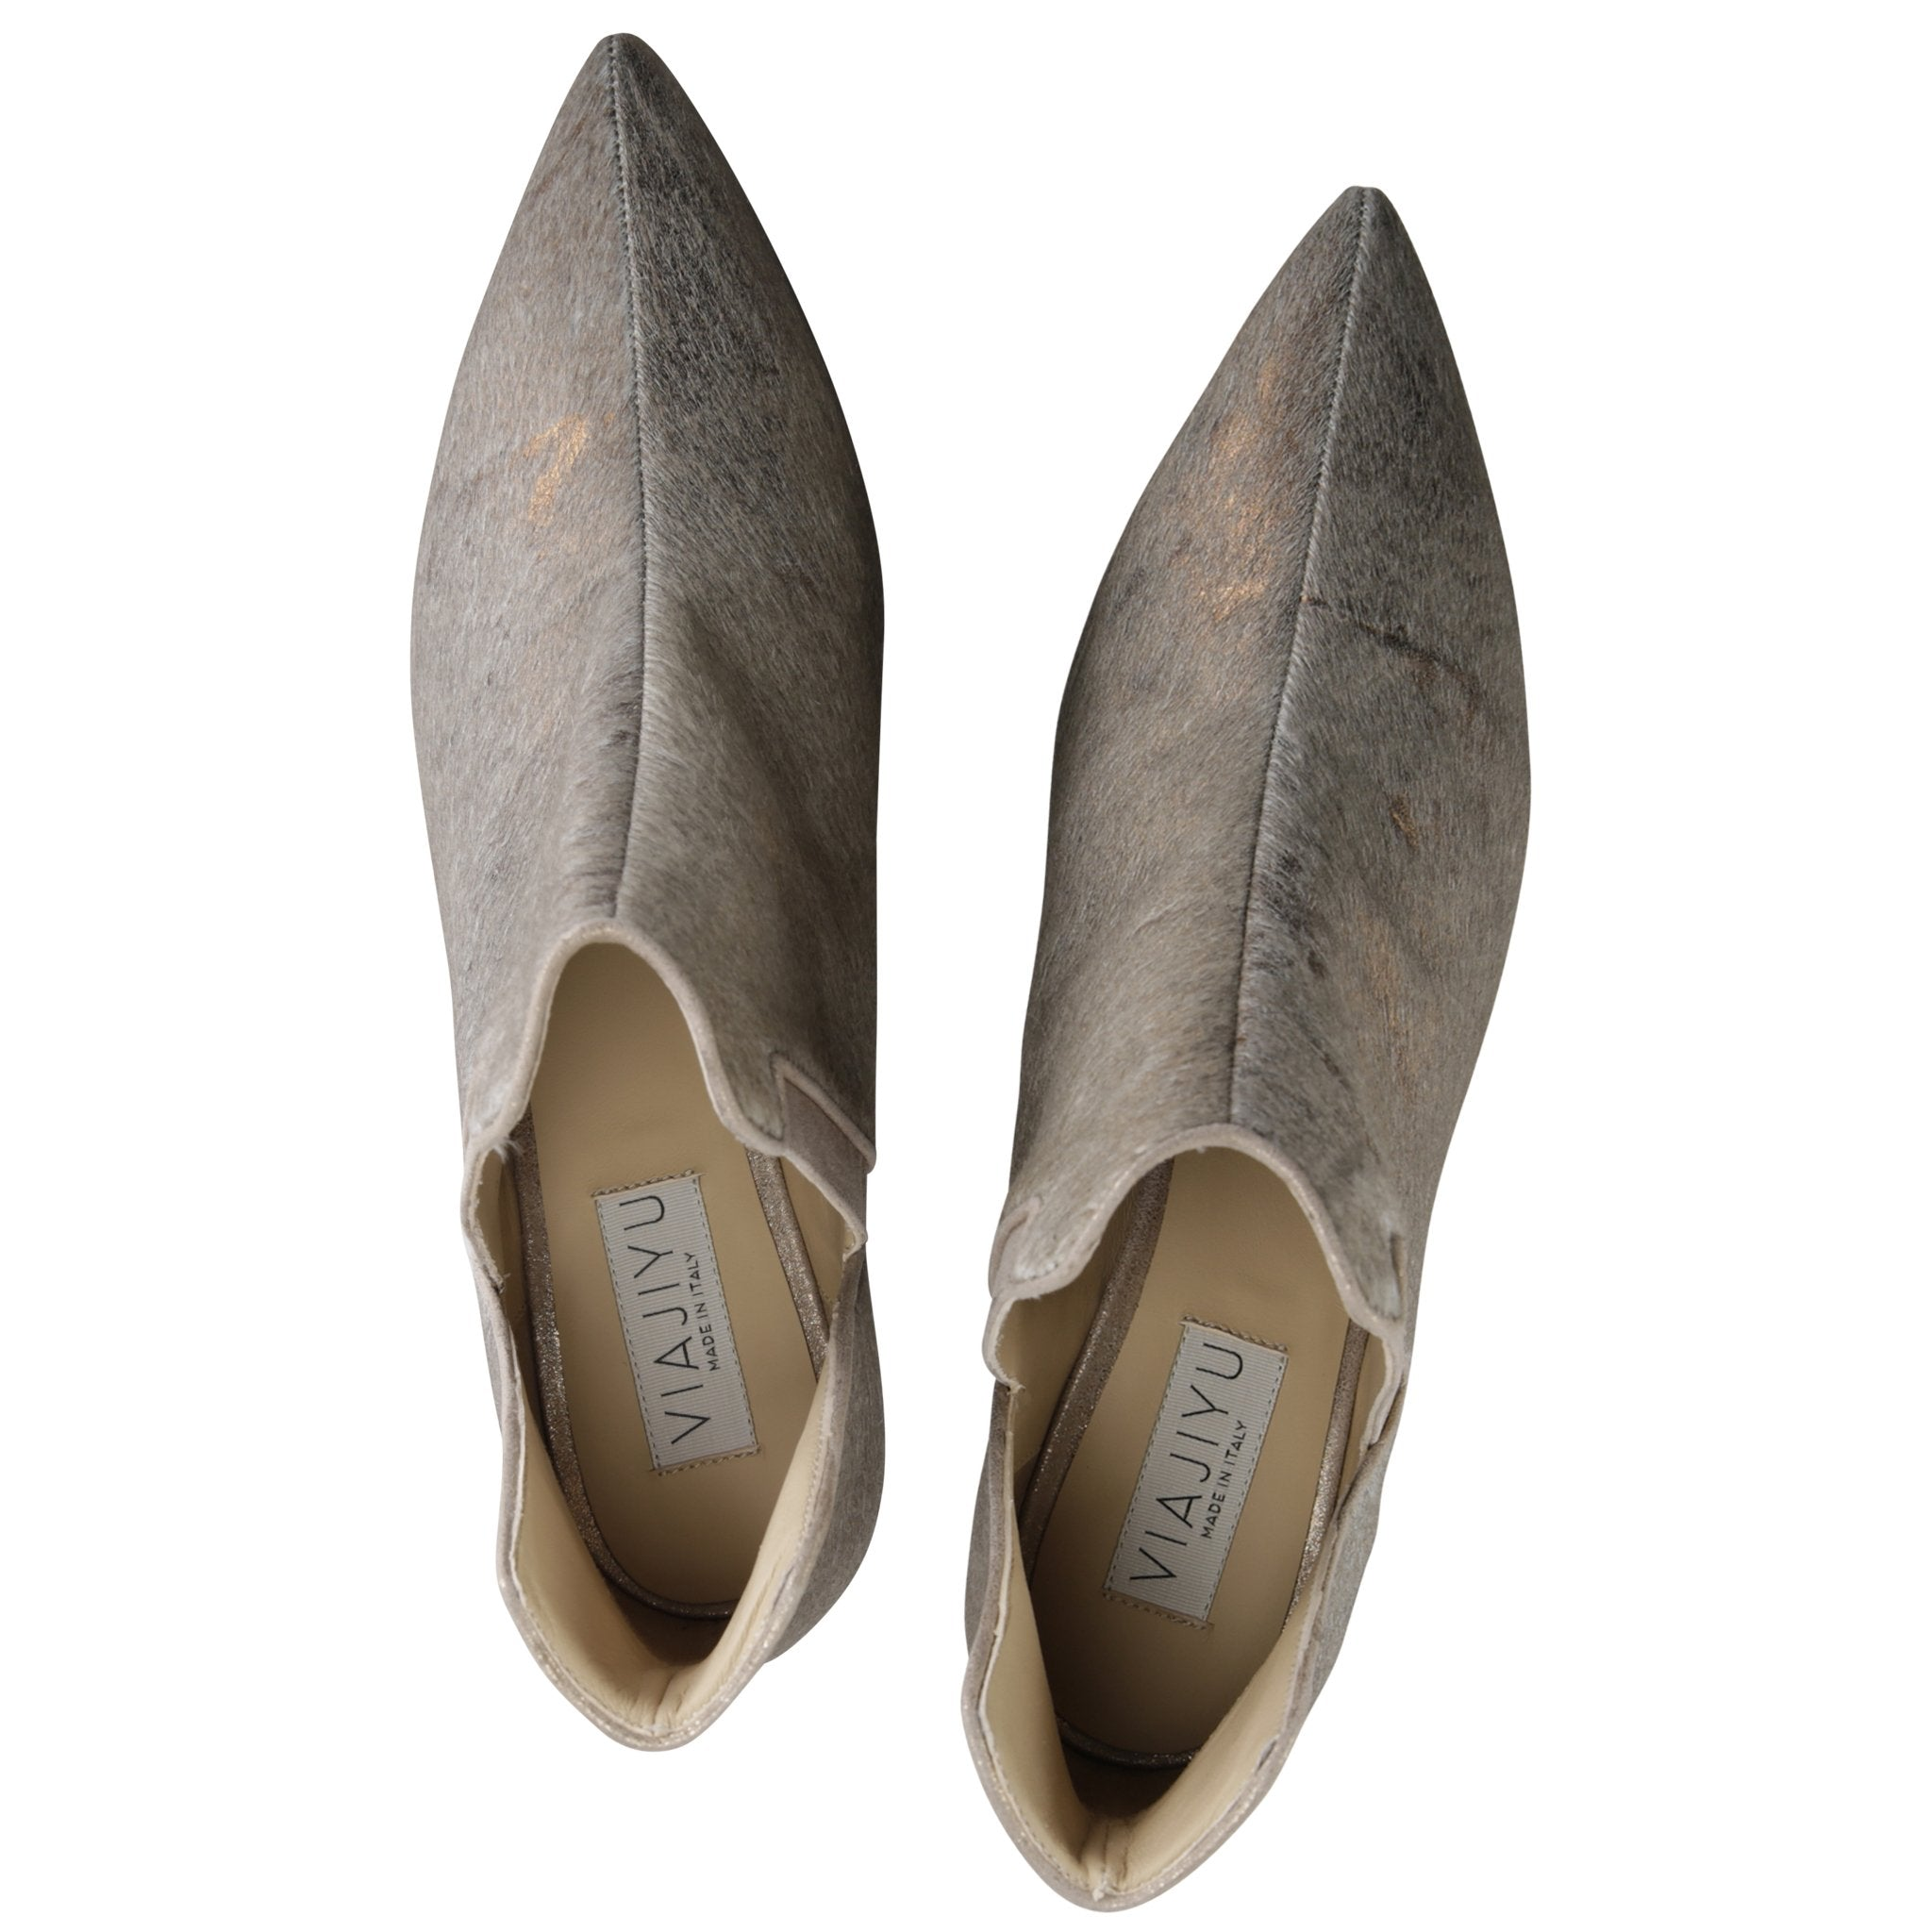 SYRENE - Calf Hair Vintage Copper + Burma Sabbia, VIAJIYU - Women's Hand Made Sustainable Luxury Shoes. Made in Italy. Made to Order.